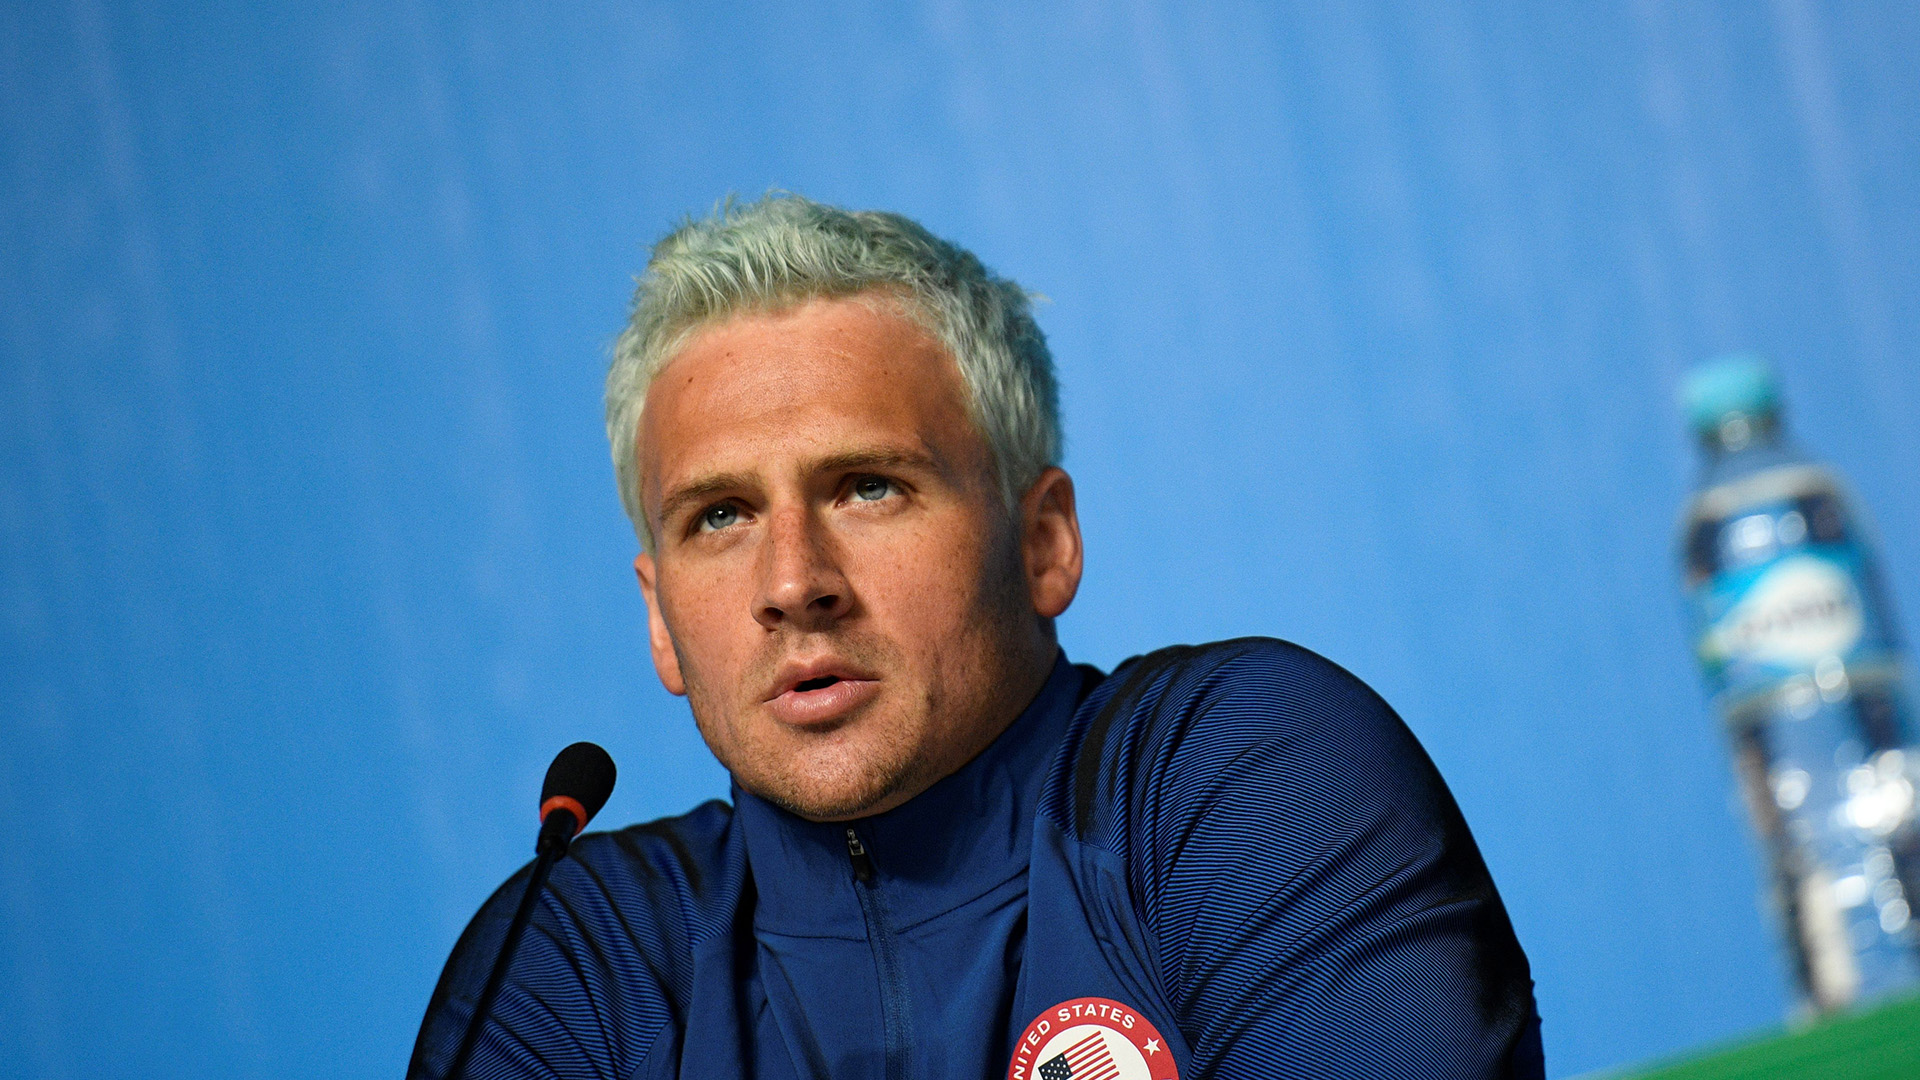 Judge Demands Ryan Lochte-s Passport Be Seized Amid Reports Rio Robbery Story Was a Lie_32214353-159532